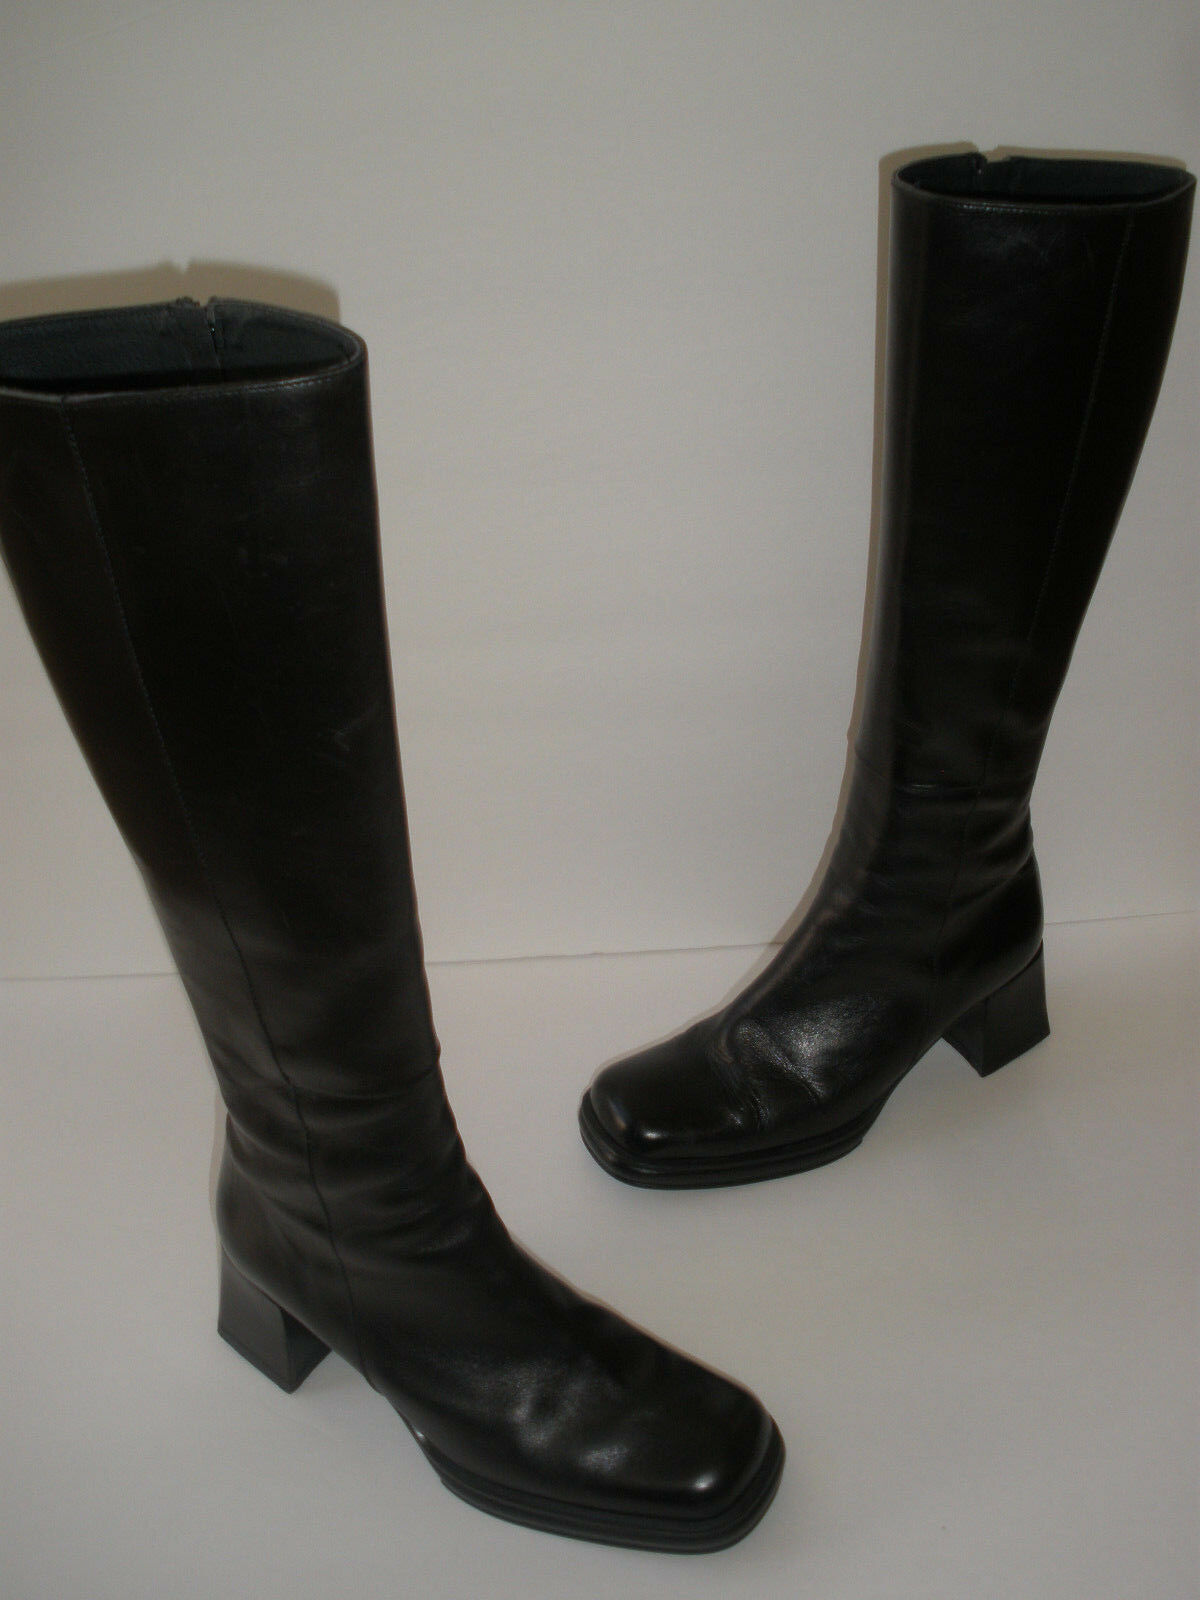 LUCIANA LUCIANA LUCIANA ROMANELLI LEATHER KNEE HI BOOT US 5.5 -6 EUR 36.5 SEXY  MADE IN ITALY 7a9b45